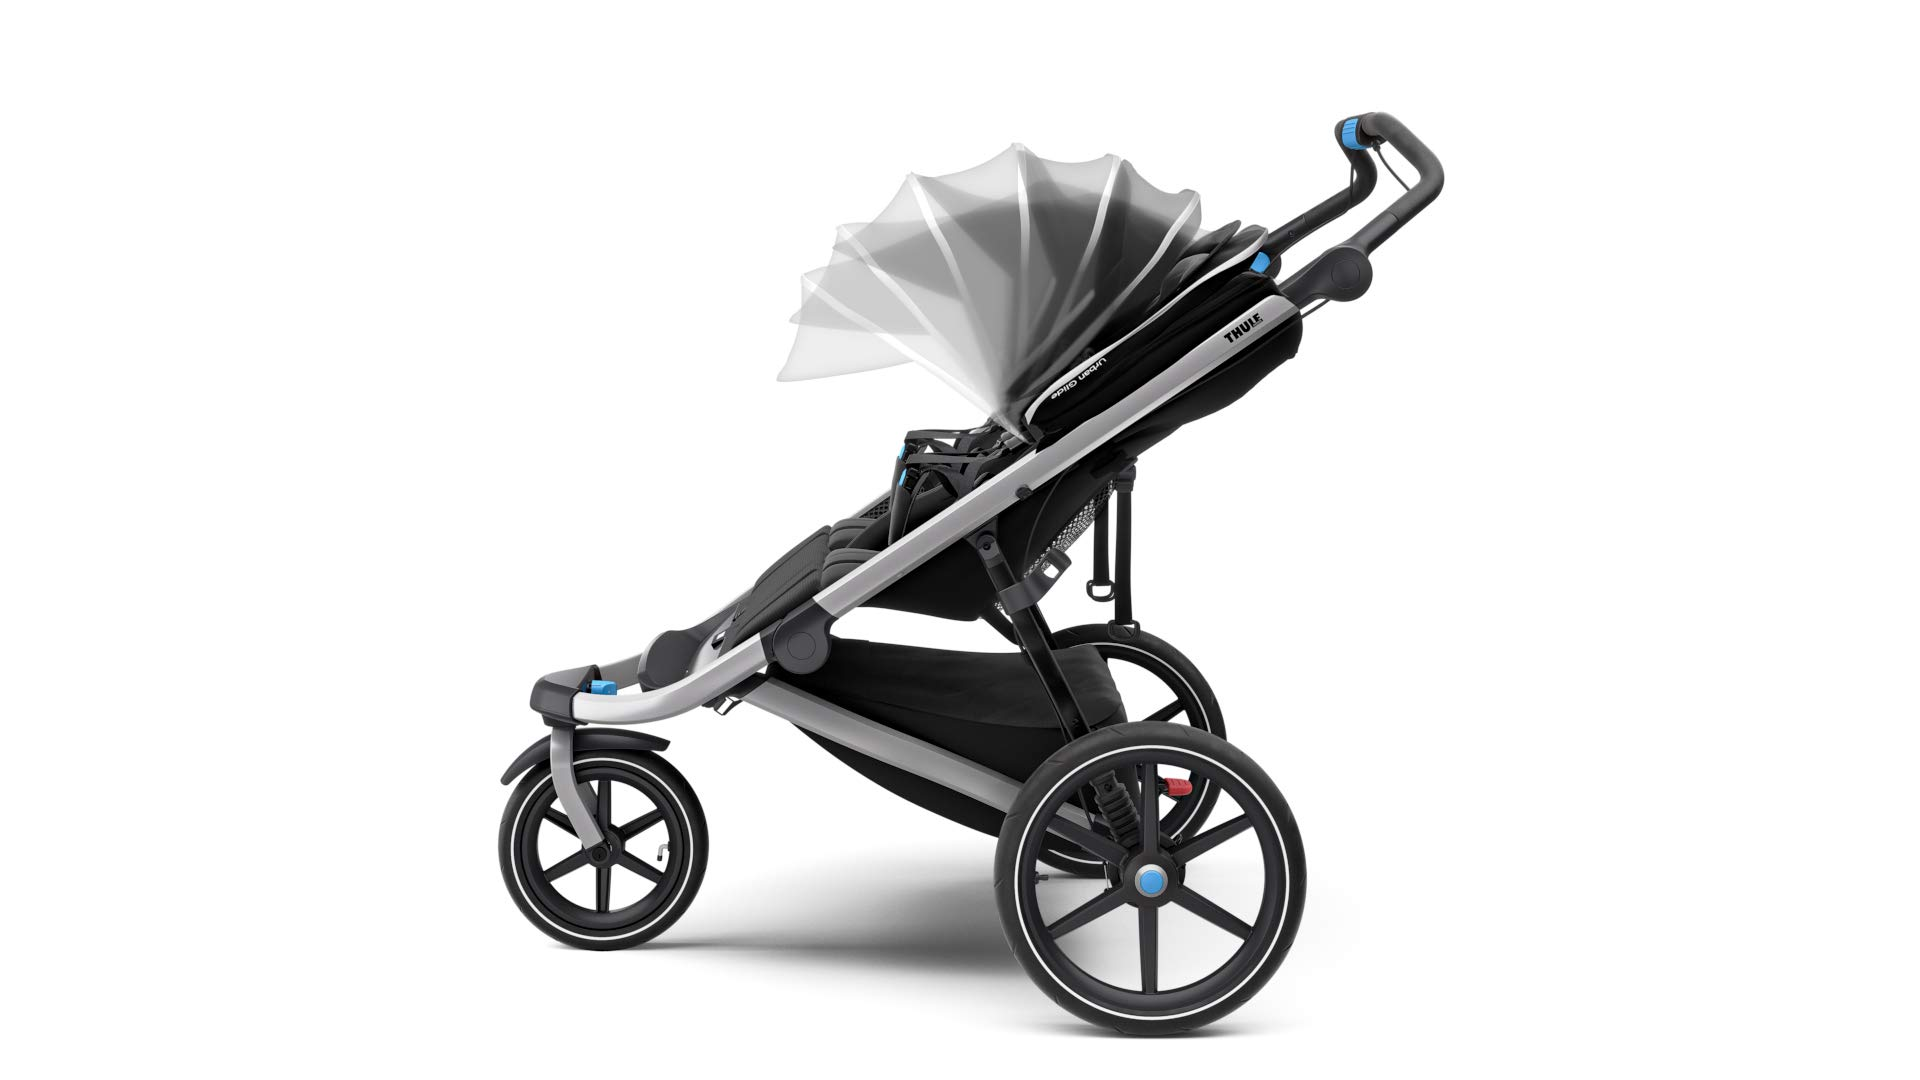 Thule Urban Glide 2.0 Jogging Stroller (Thule Blue w/Silver Frame) Thule One-handed, compact fold for easy storage and transportation Integrated twist hand brake provides speed control on hilly terrain Multi-position canopy with side-ventilation windows ensures your child is comfortable 9